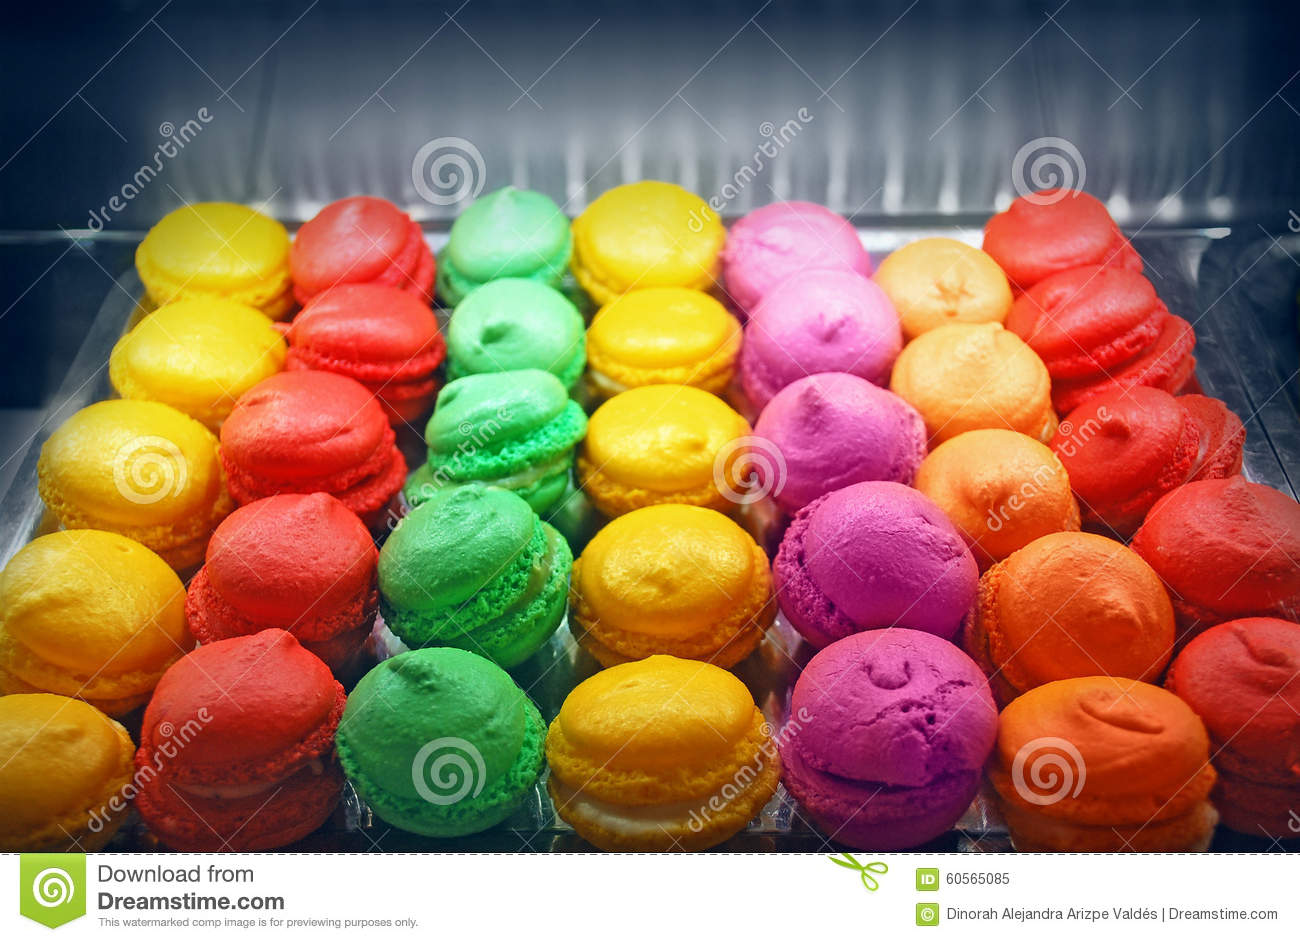 Macaroons in the oven